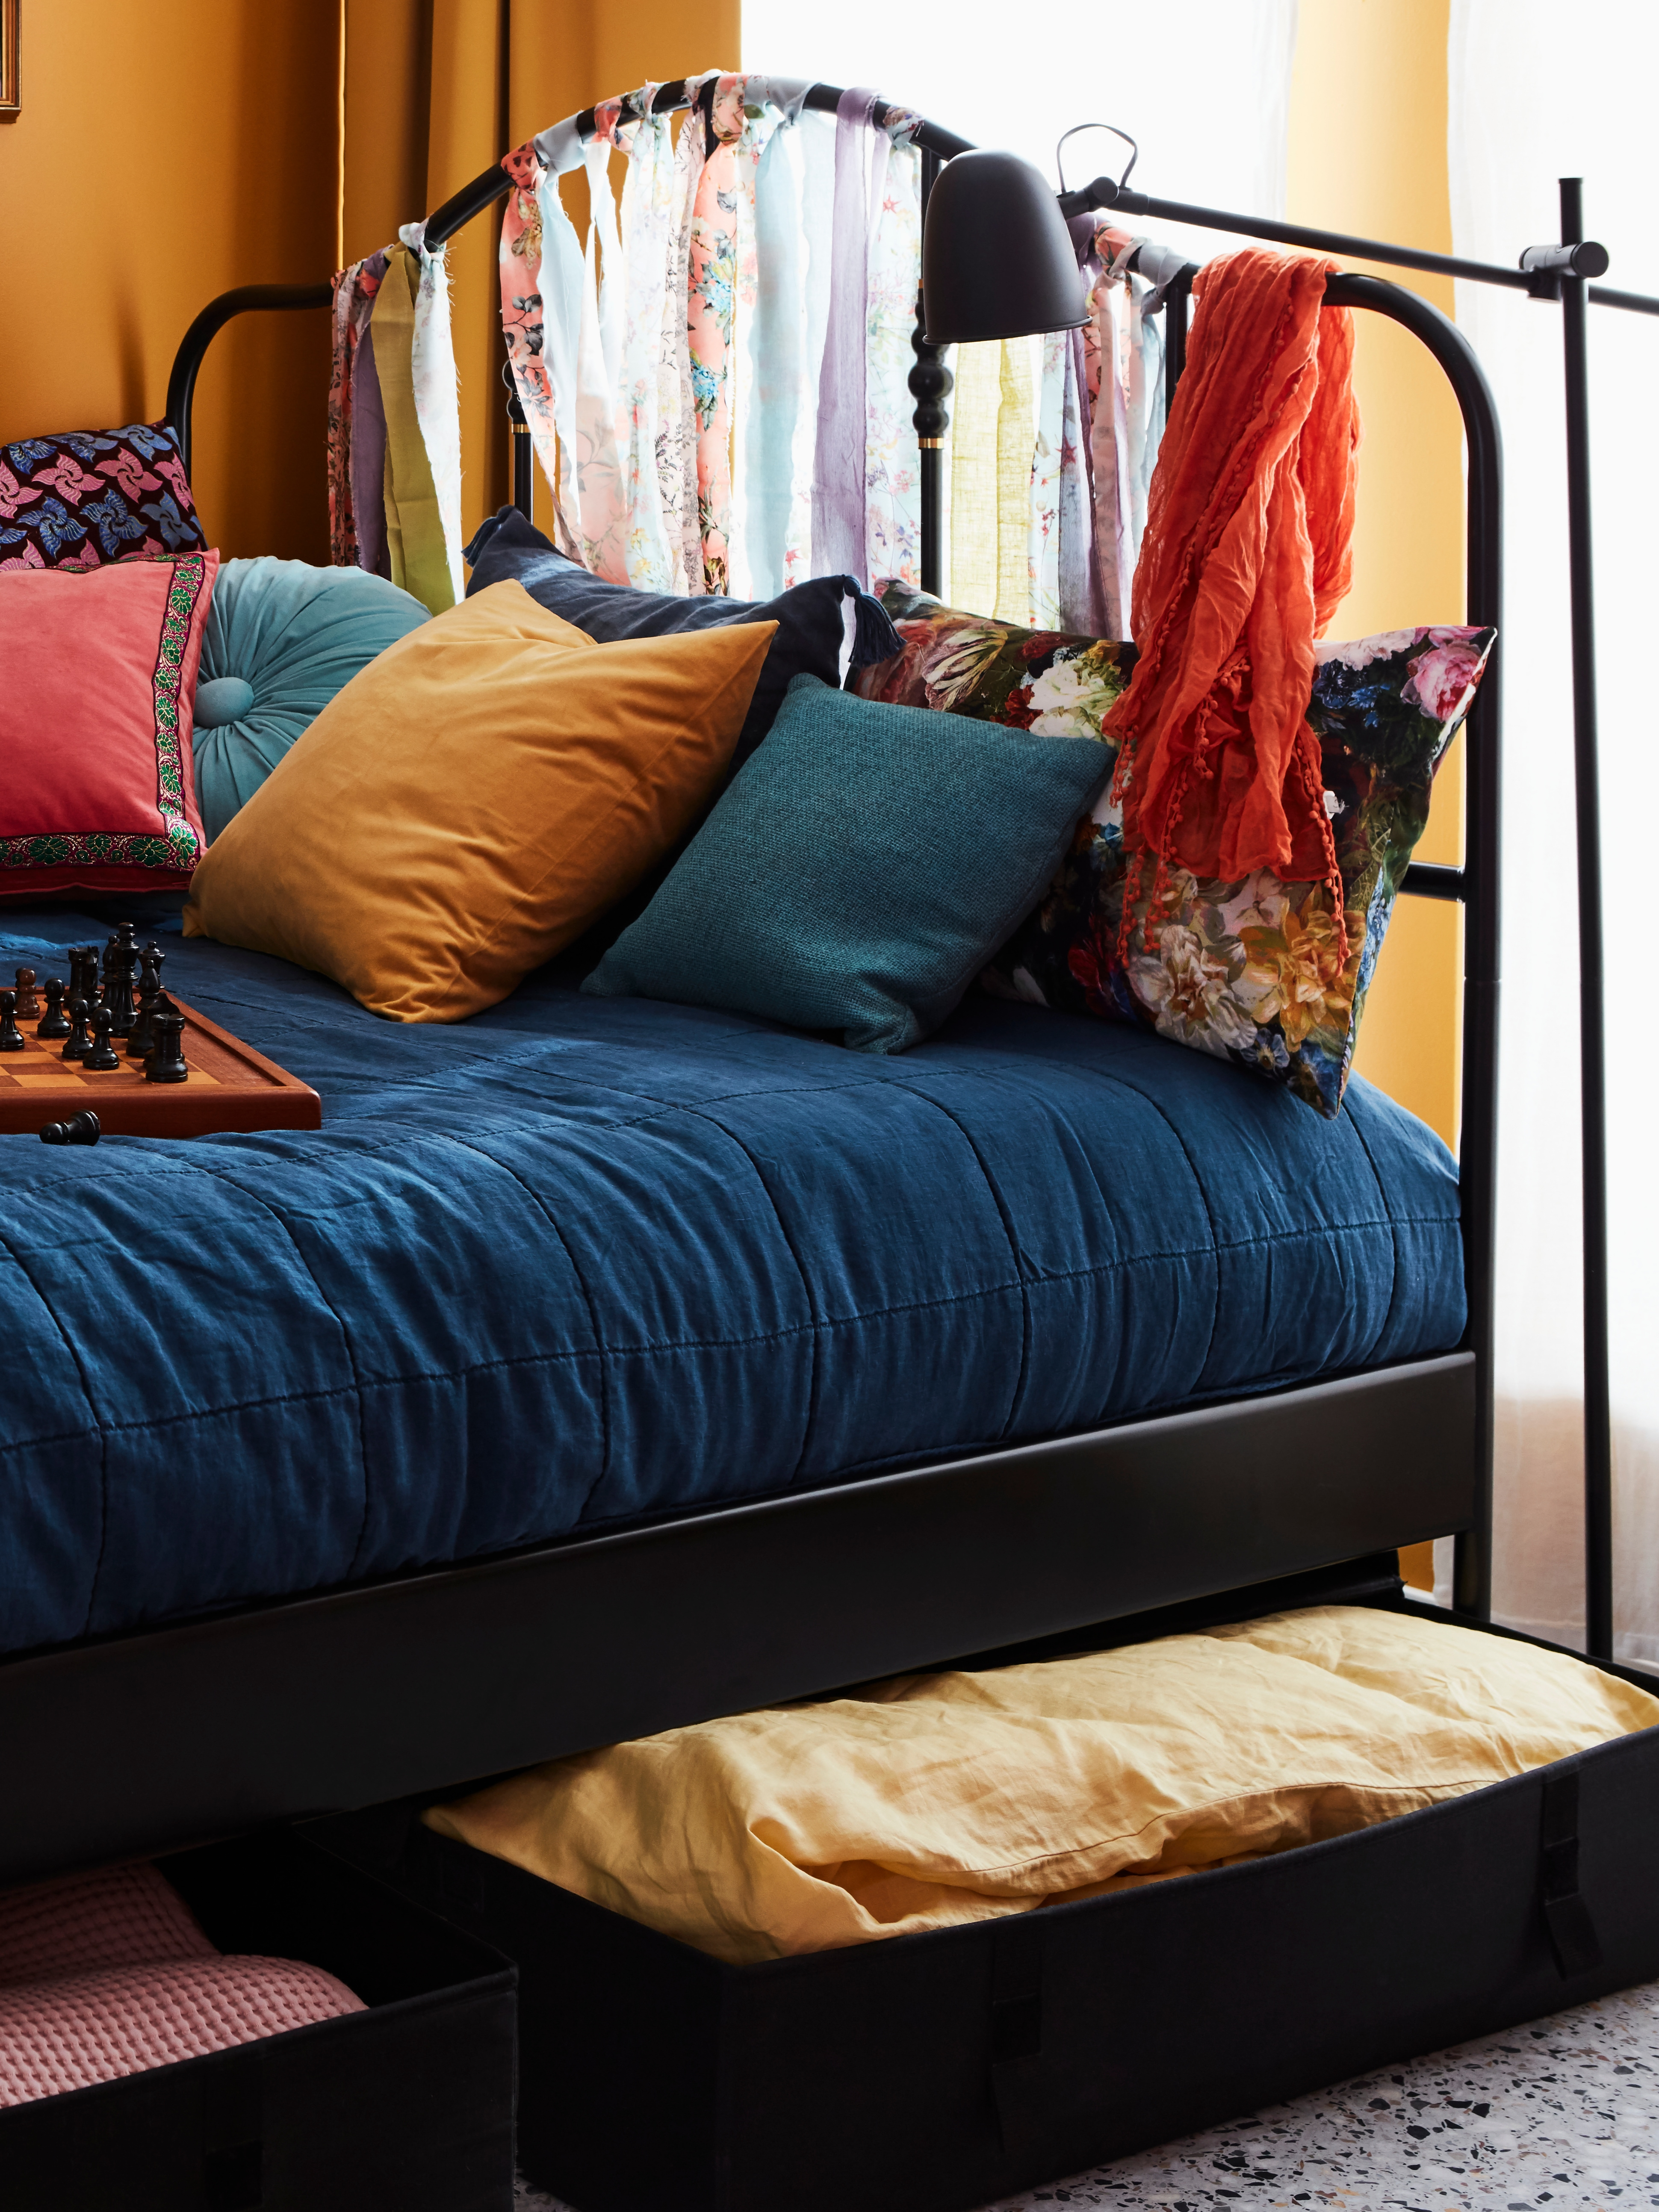 A colourfully made bed with lots of cushions on a black-coated steel SAGSTUA bed frame has fabric storage cases underneath.